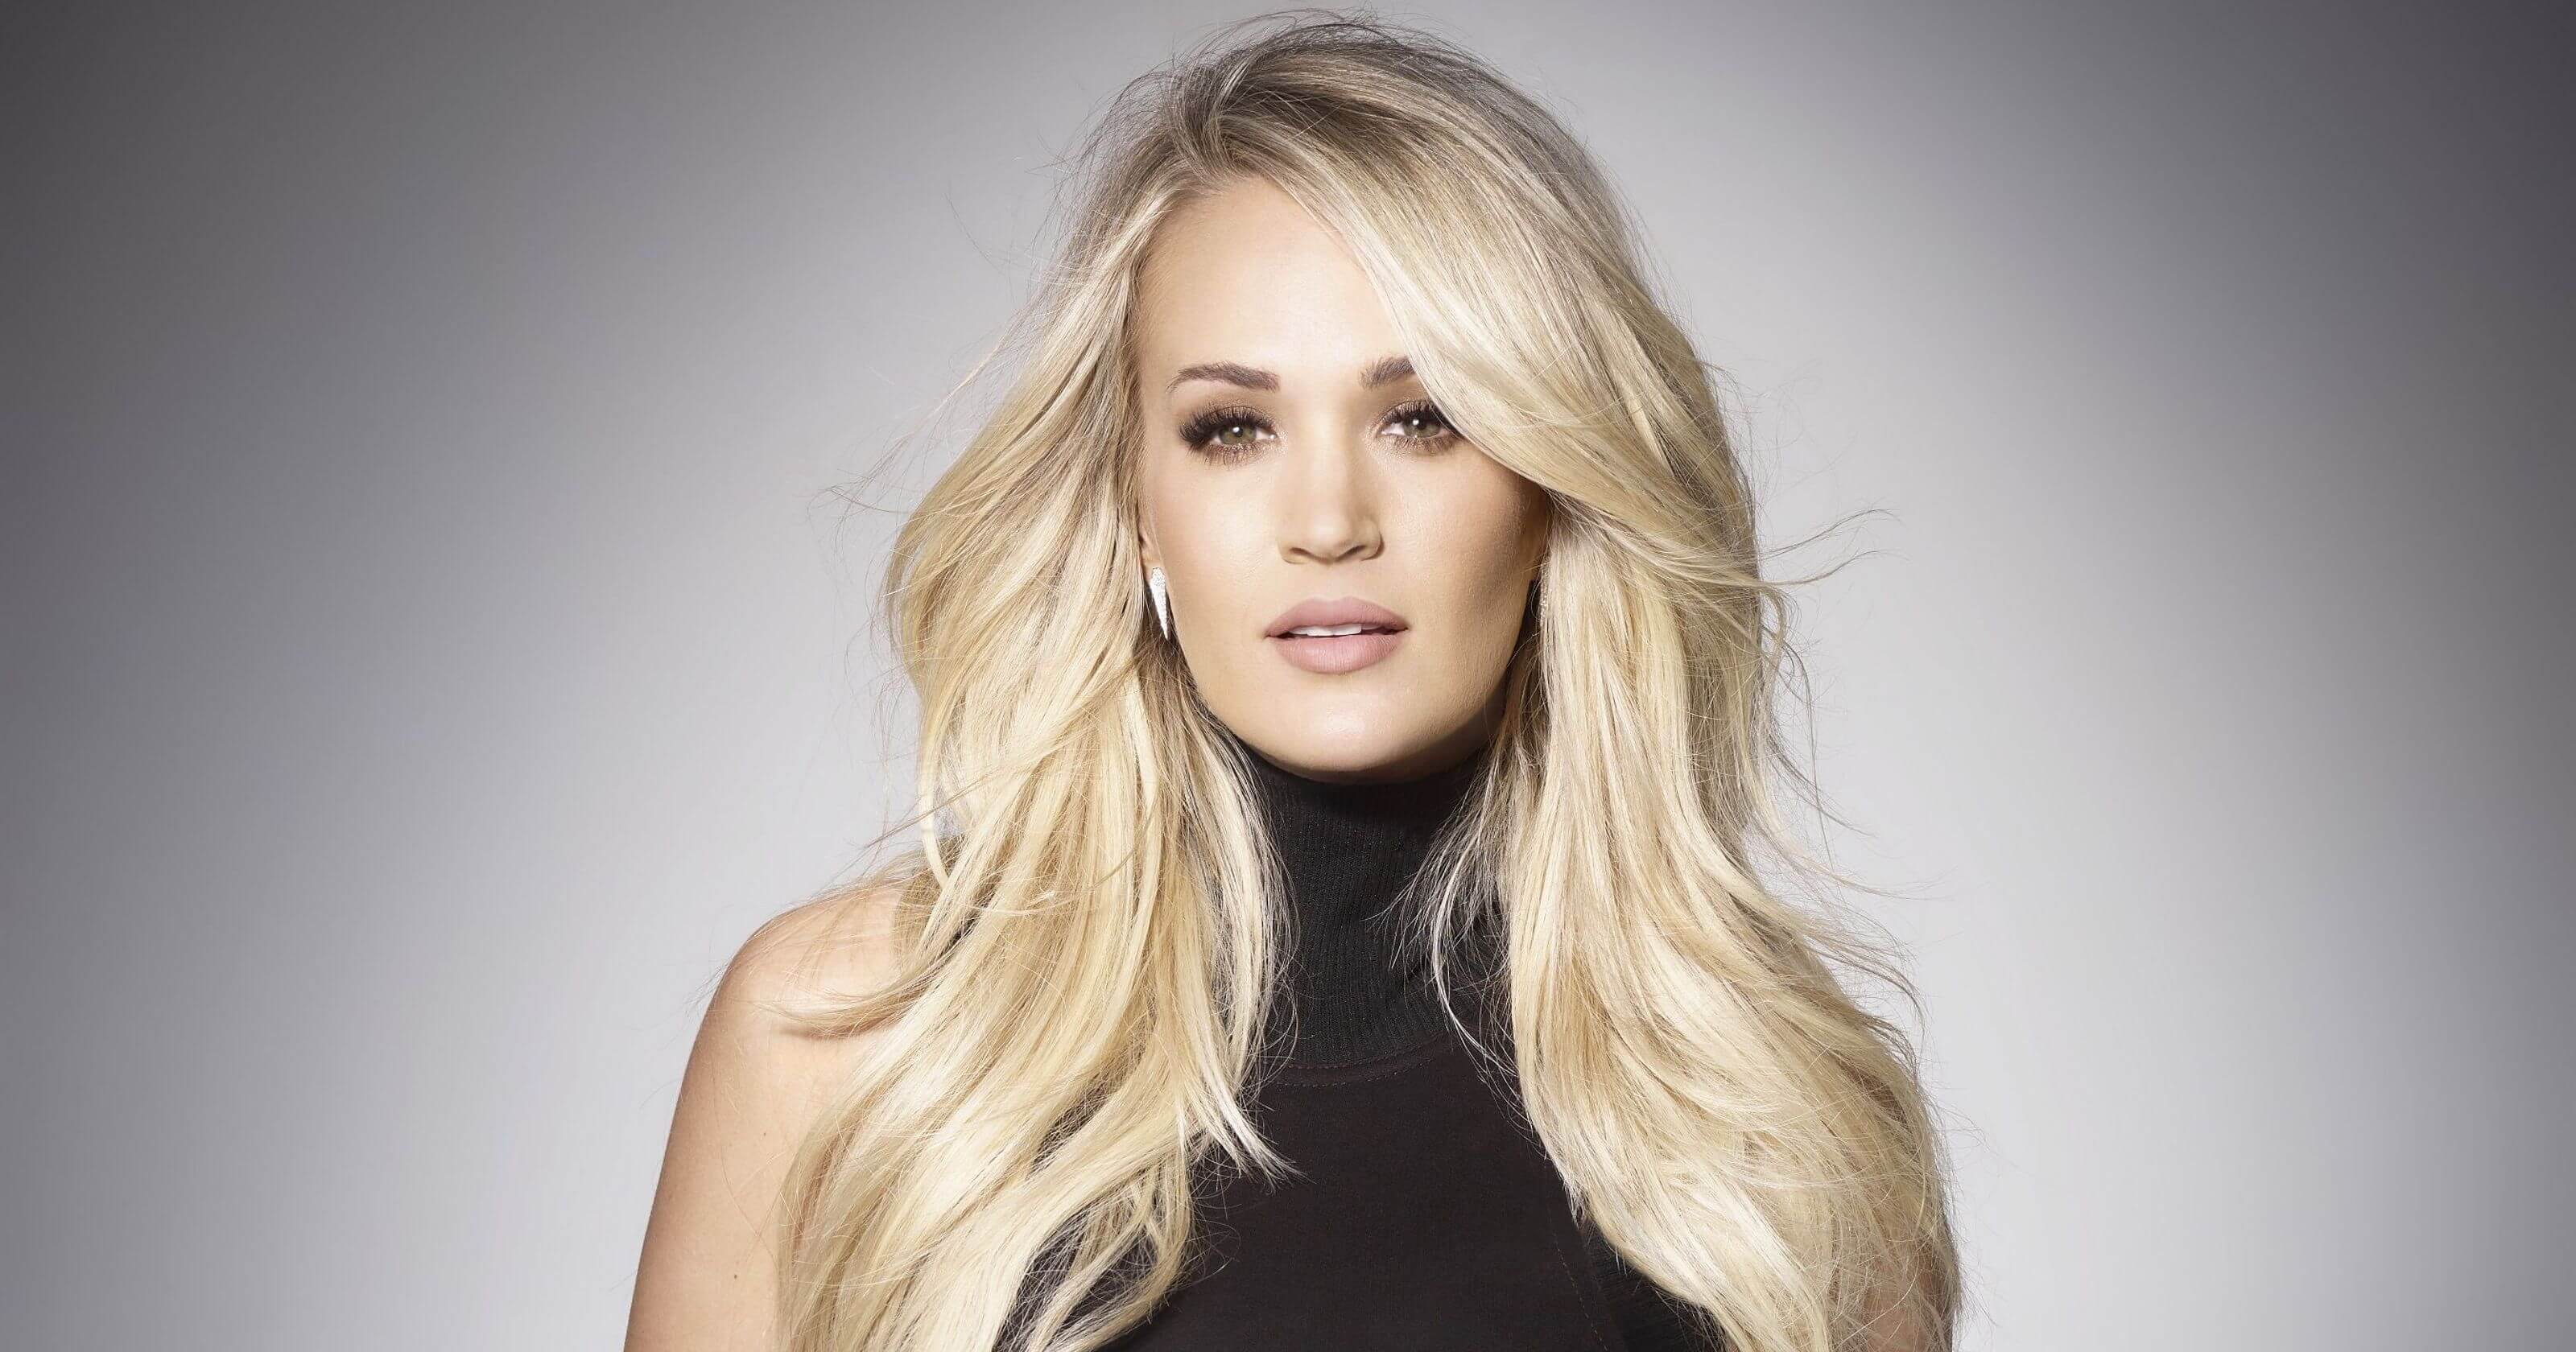 Carrie Underwood - Did You Know?